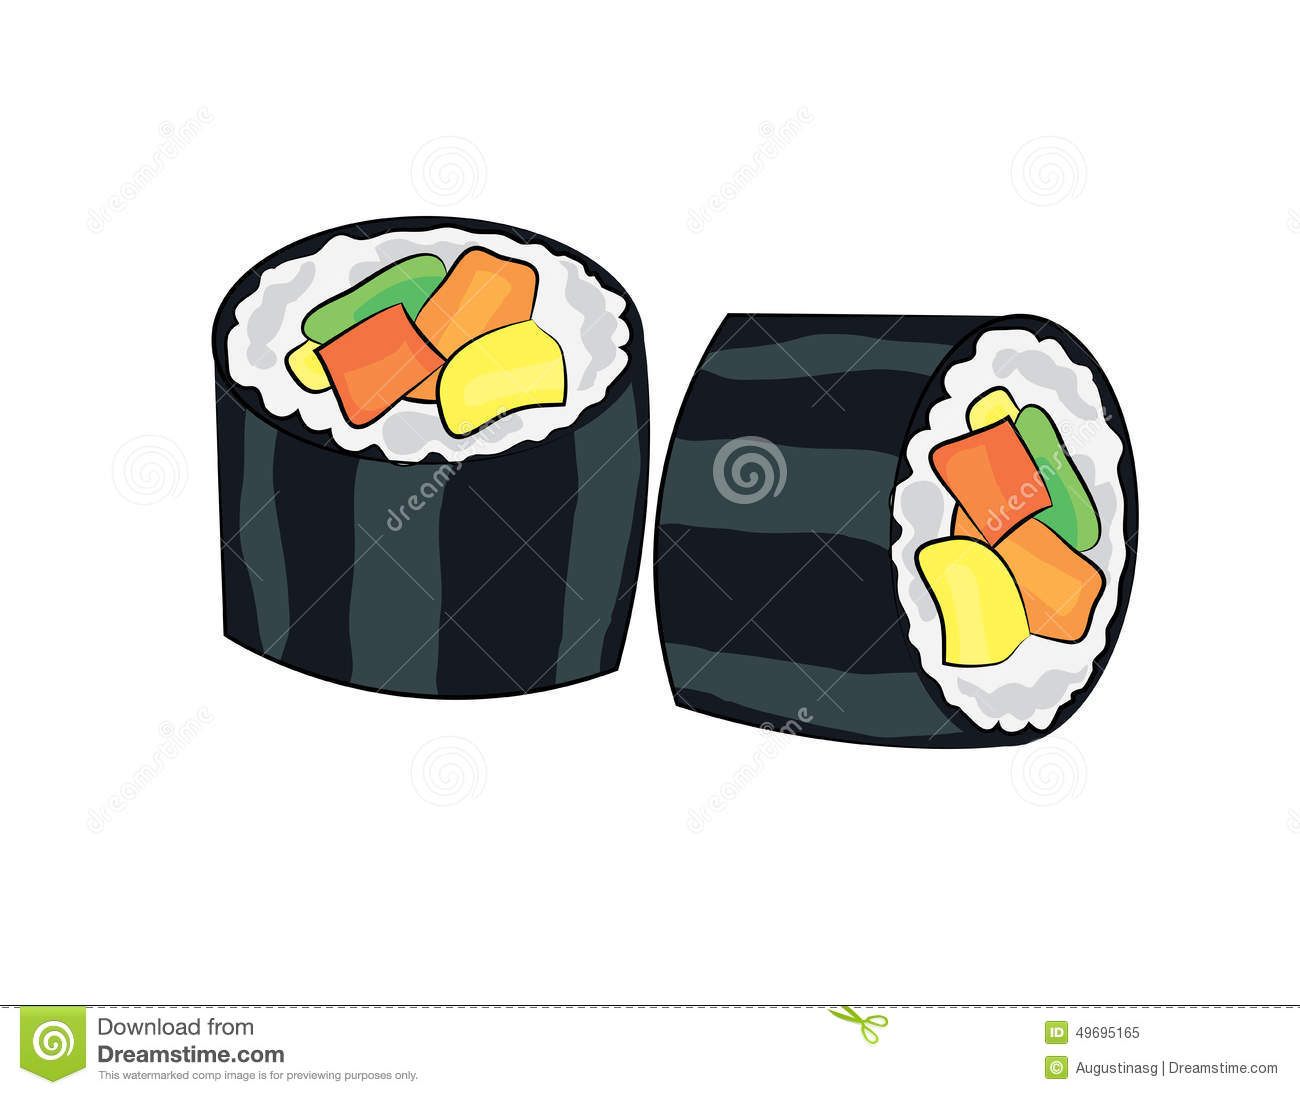 sushi cartoon Pictures That Say Thank You Pictures That Say Thank You